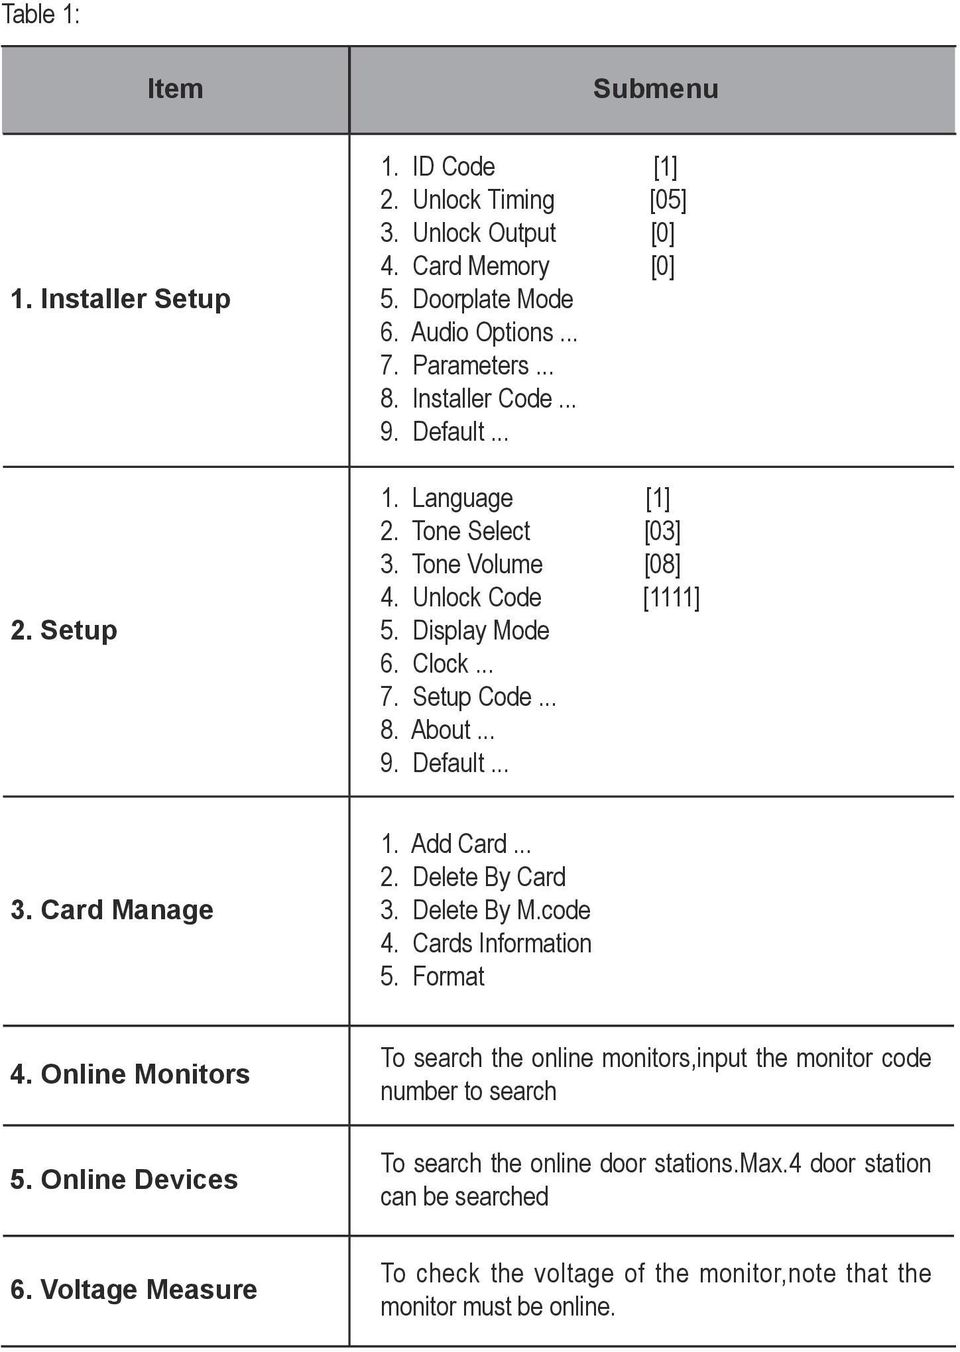 Add Card... 2. Delete By Card 3. Delete By M.code 4. Cards Information 5. Format 4. Online Monitors 5. Online Devices 6.